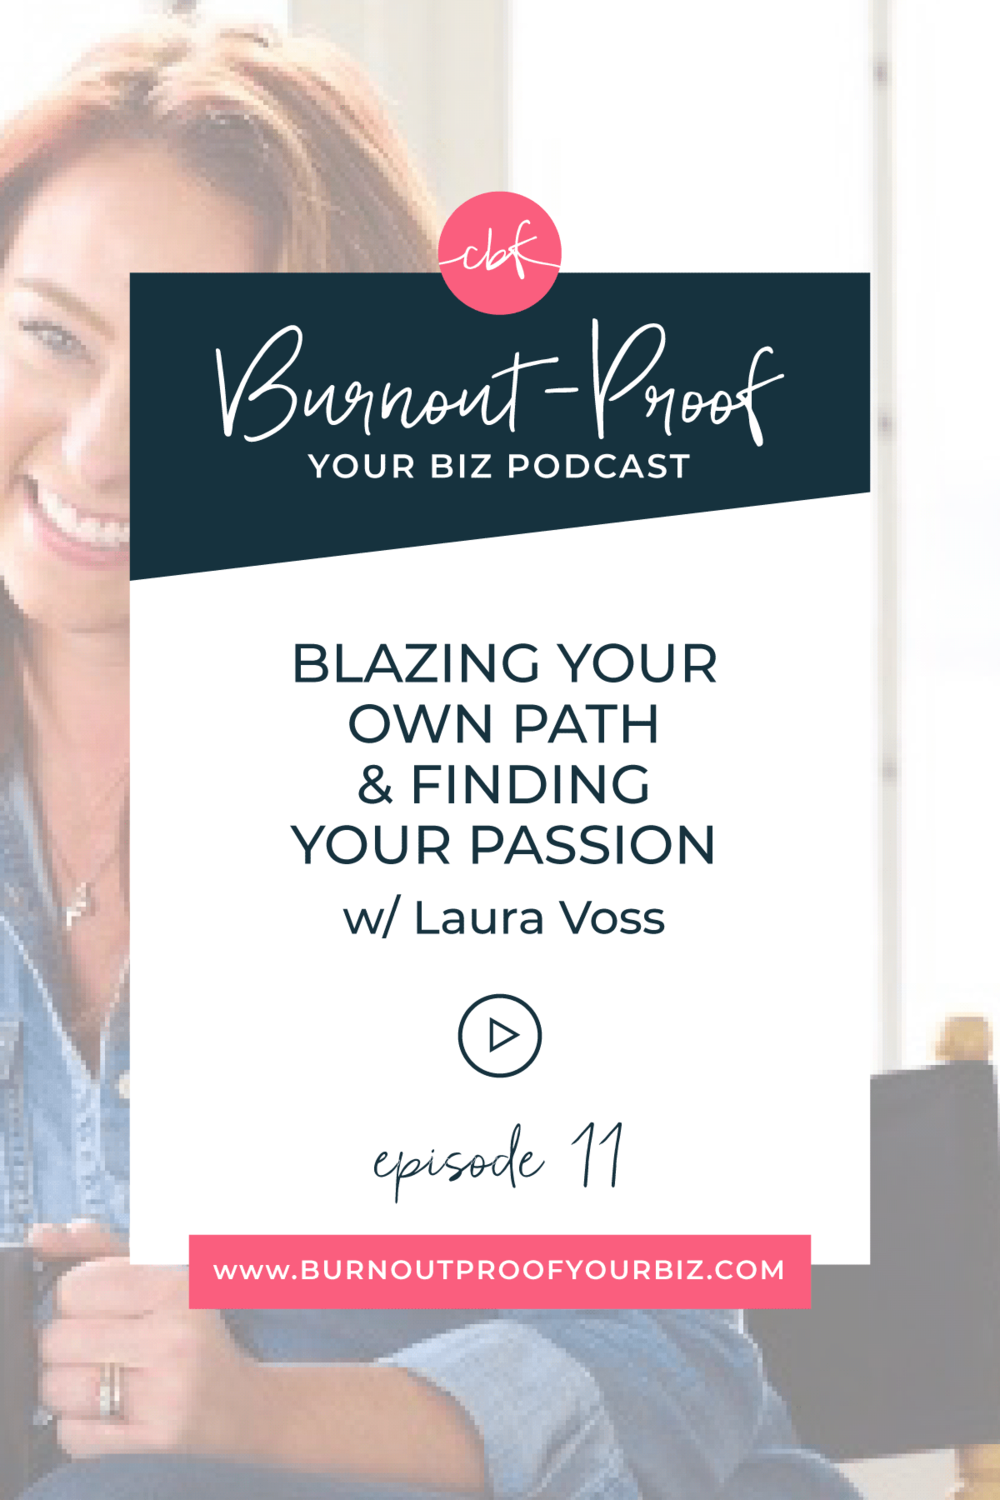 Burnout-Proof Your Biz Podcast with Chelsea B Foster | Episode 011 - Blazing Your Own Path & Finding Your Passion with Laura Voss | Learn how to run your biz and live your dream life on your own terms without the fear of burnout.